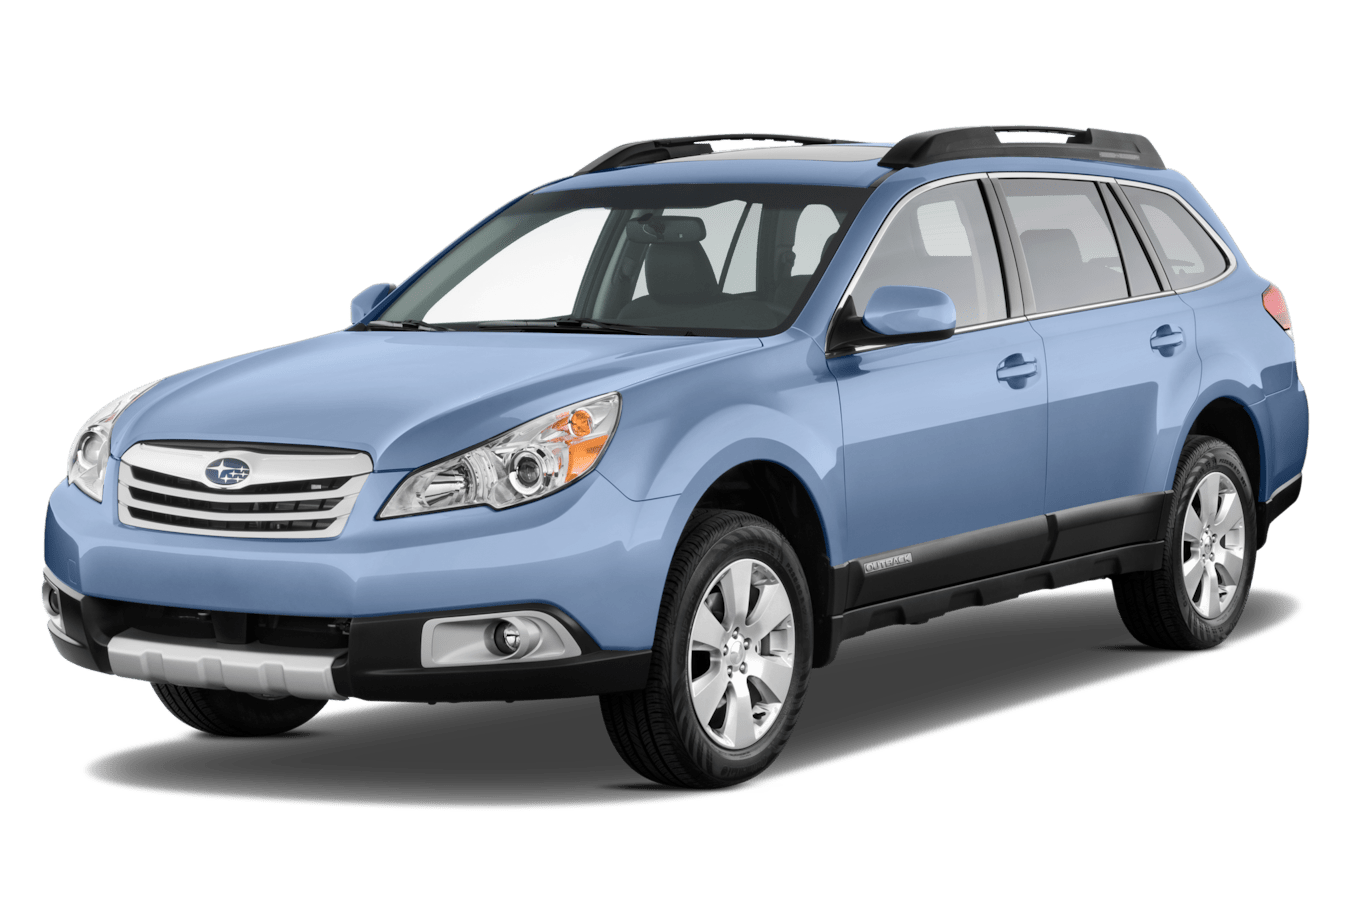 hight resolution of 2010 subaru outback reviews research outback prices specs 2 5 subaru h4 engine diagram